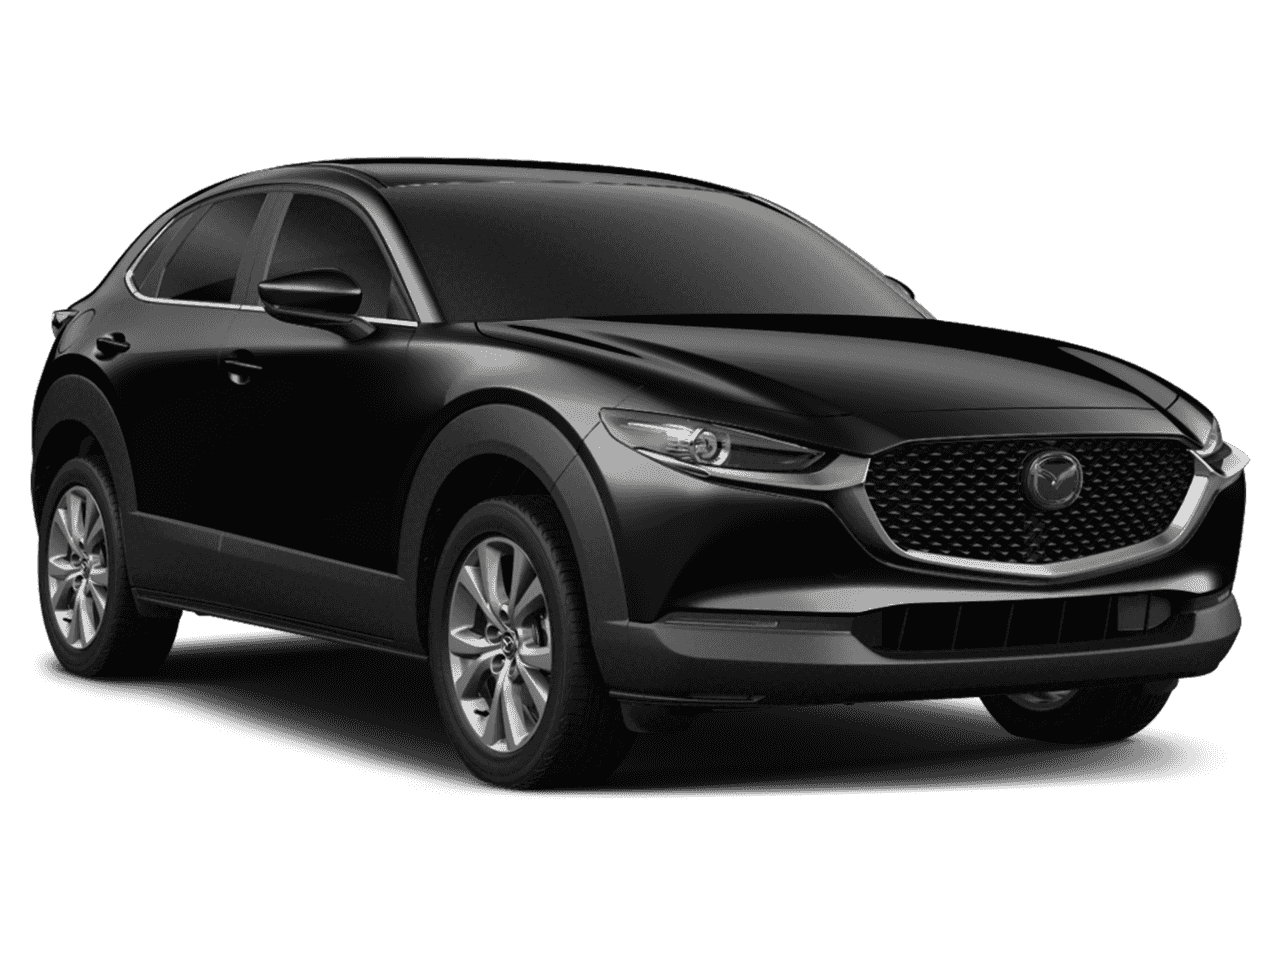 "2020 Mazda<br/><span class=""vdp-trim"">CX-30 Select Package AWD Sport Utility</span>"